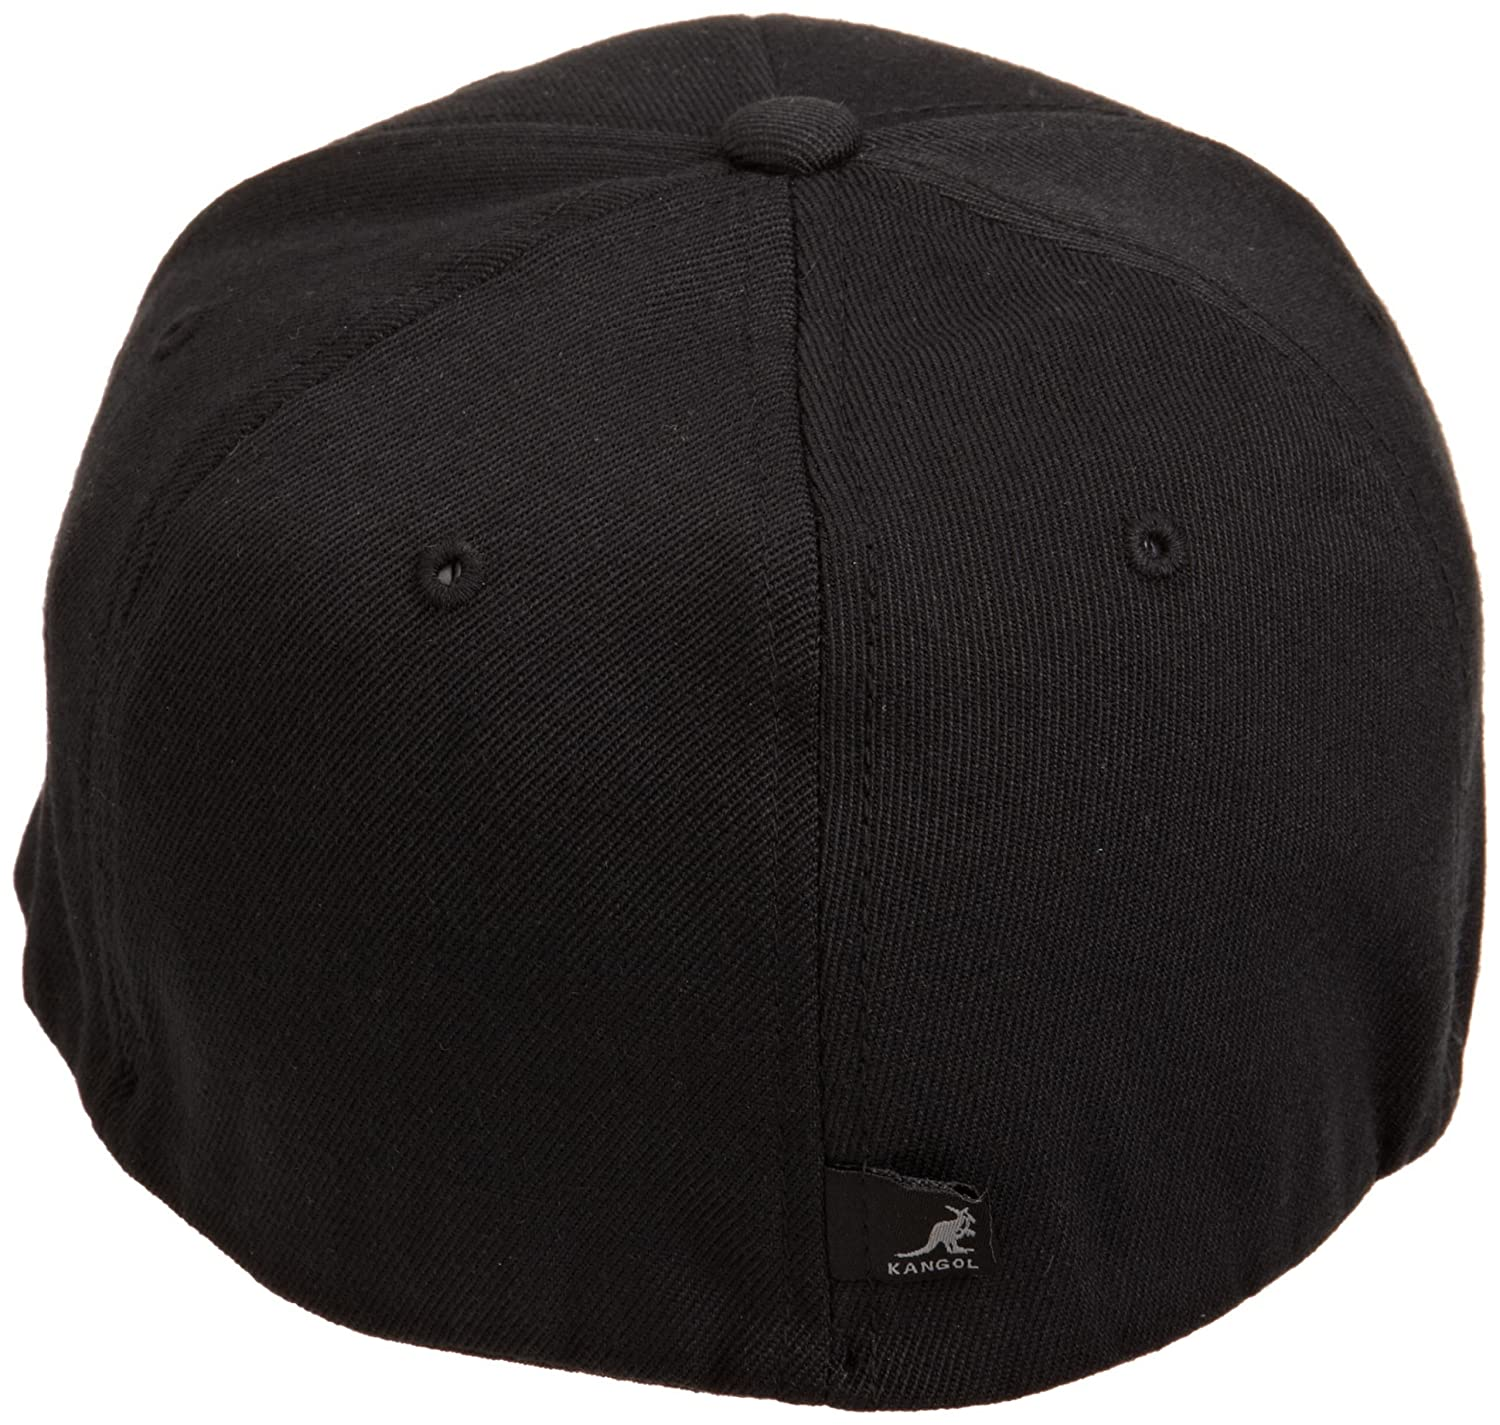 Kangol Men s Wool Flex-fit Baseball Cap at Amazon Men s Clothing store  ab4f4299e330